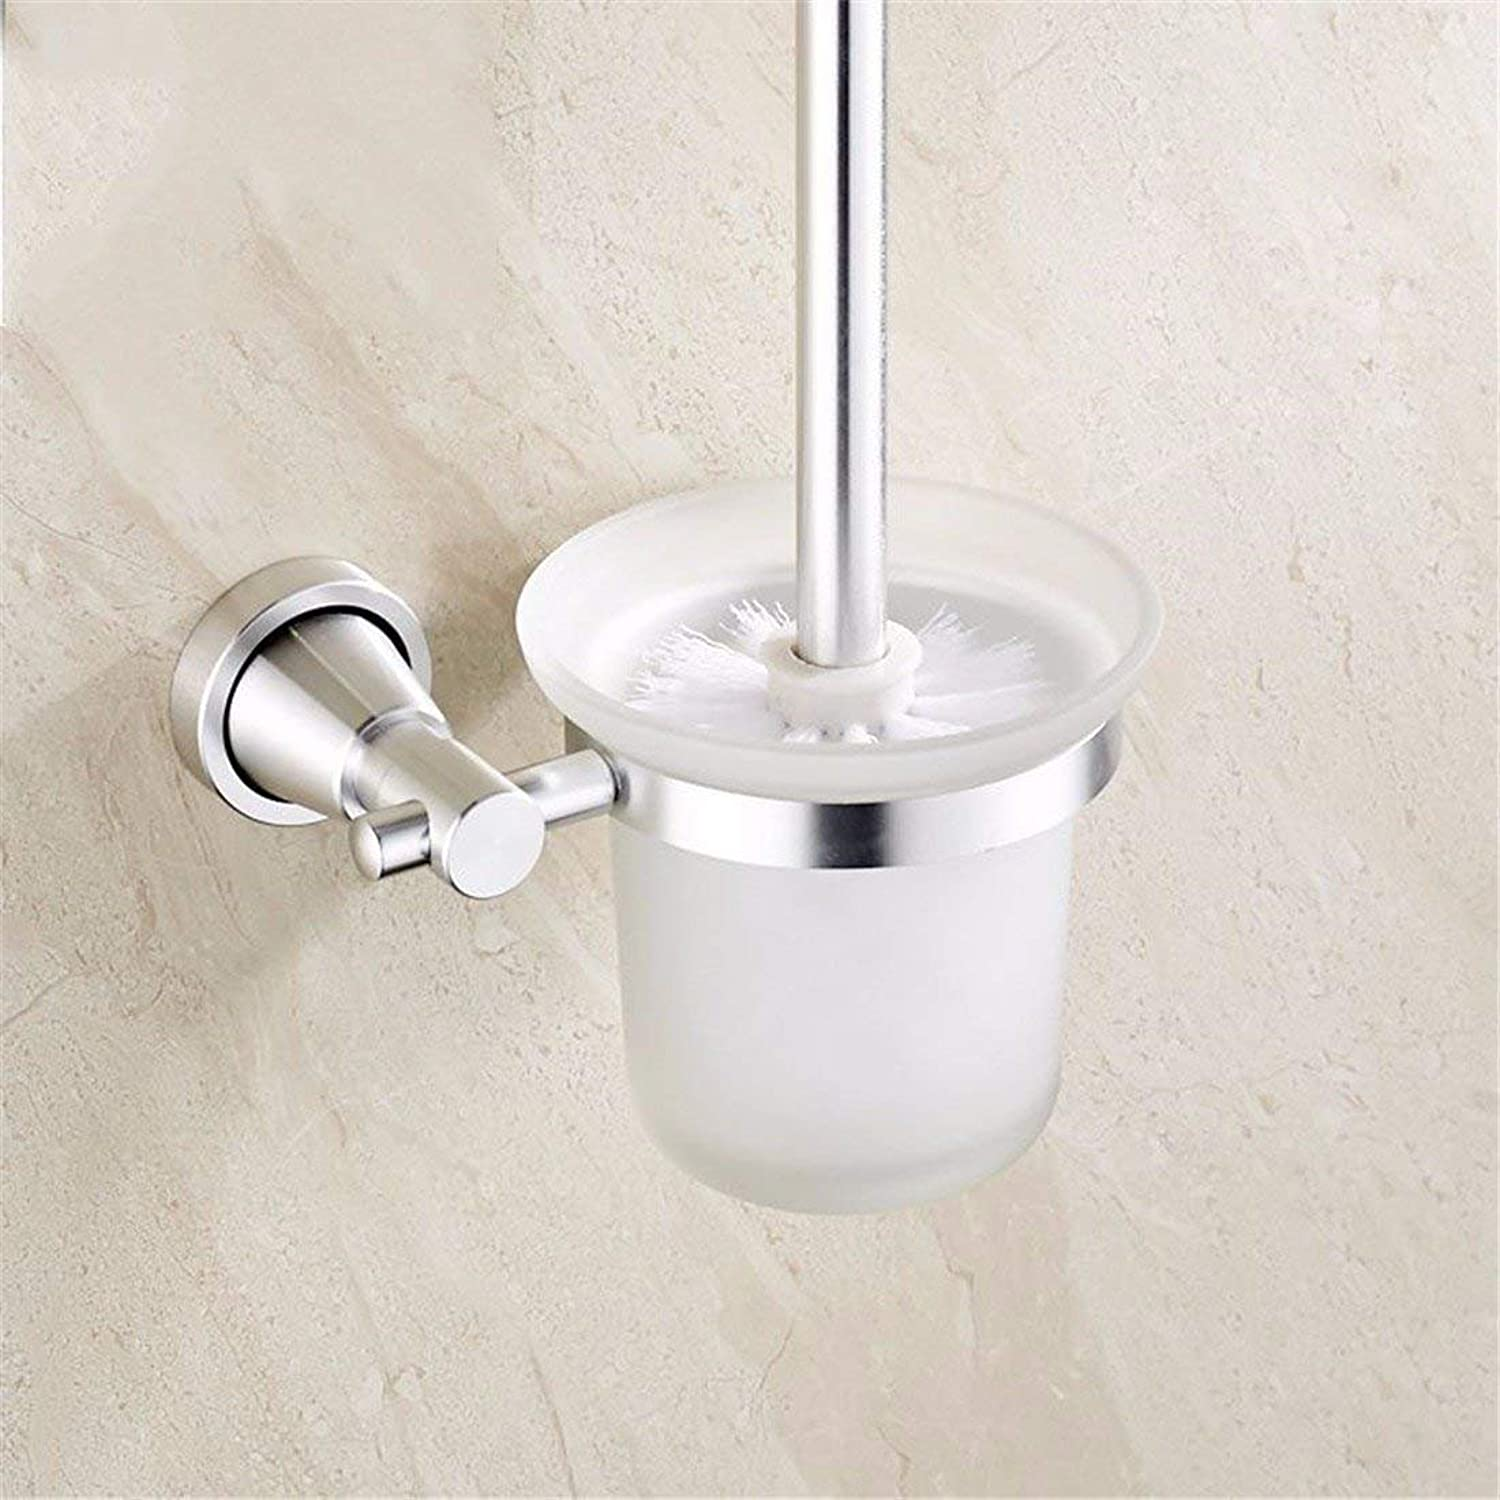 The Wire Contemporary Aluminum Dimensions, Bathroom, Box to soap, Toilet Paper, Toilet Brush in a Rack